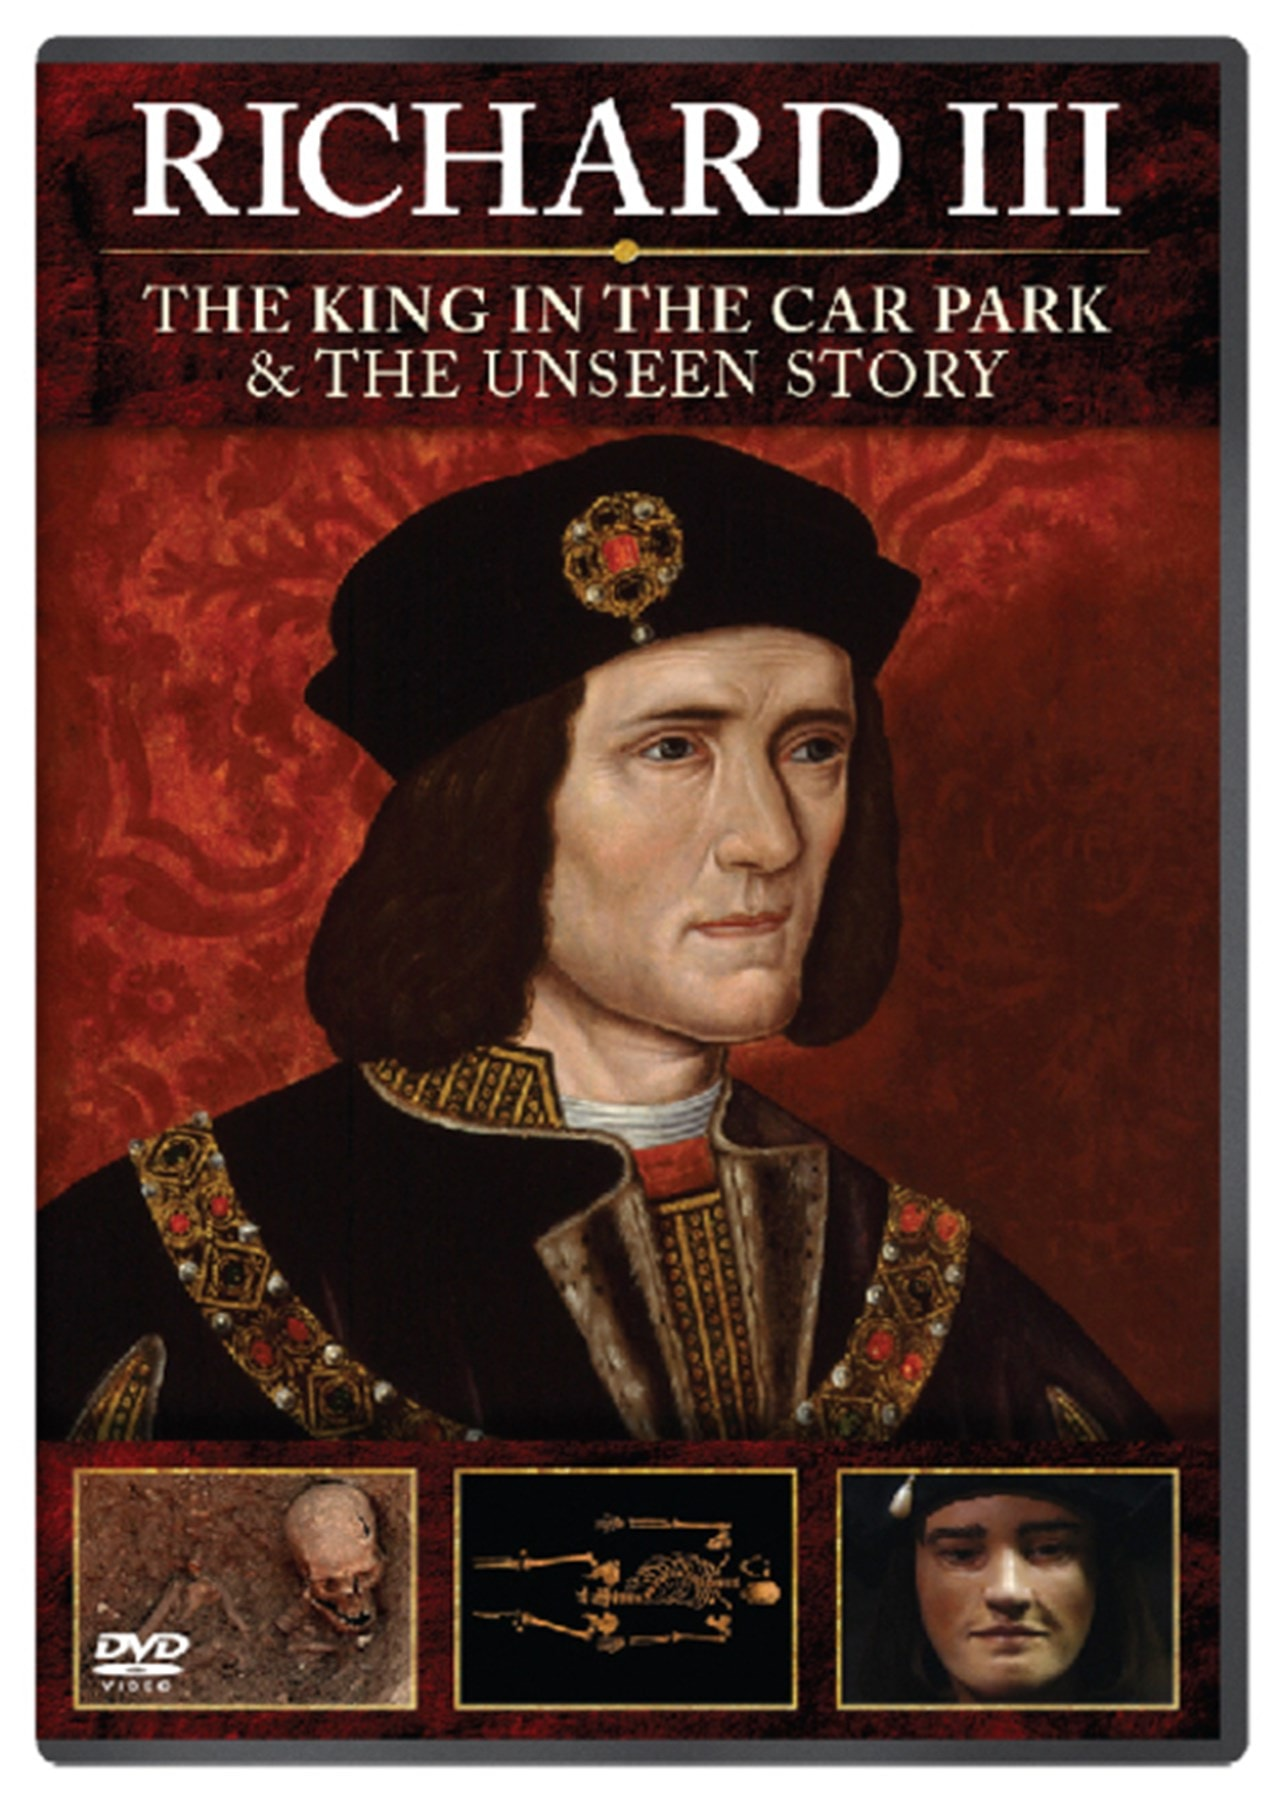 Richard III: The King in the Carpark/The Unseen Story - 1